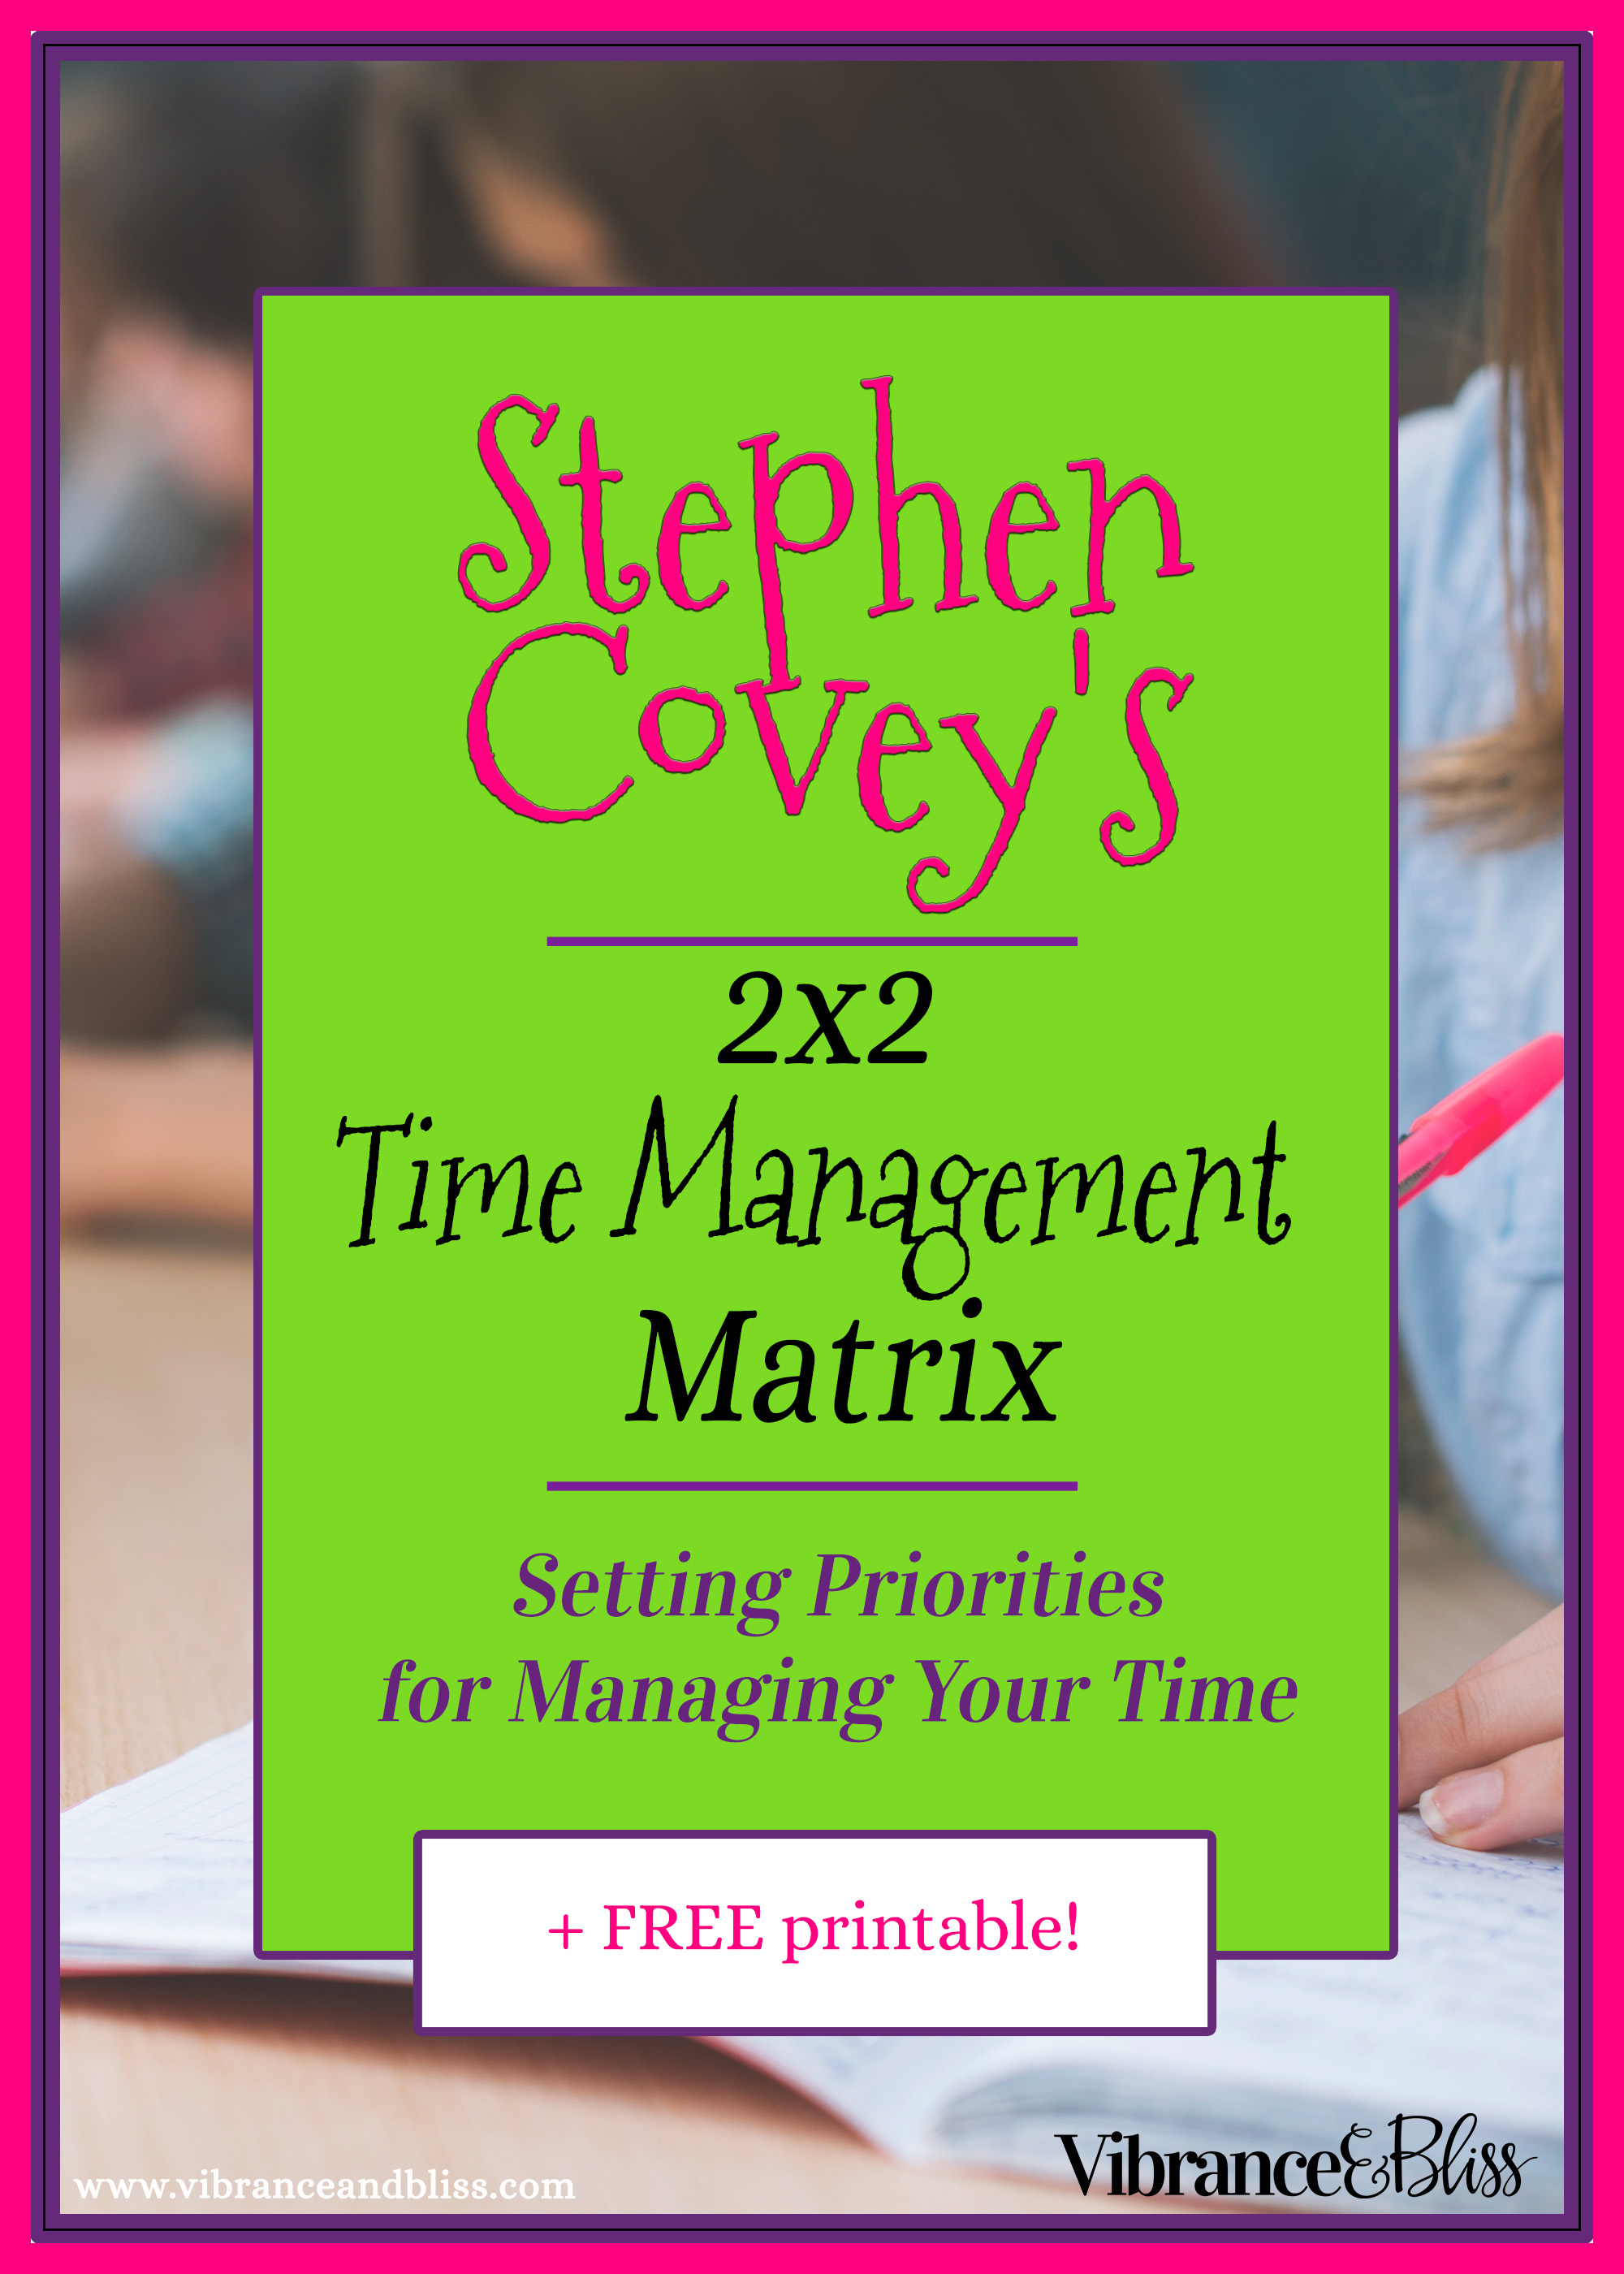 image about Covey Quadrants Printable referred to as Stephen Coveys 2x2 Season Manage Matrix - Vibrance Bliss